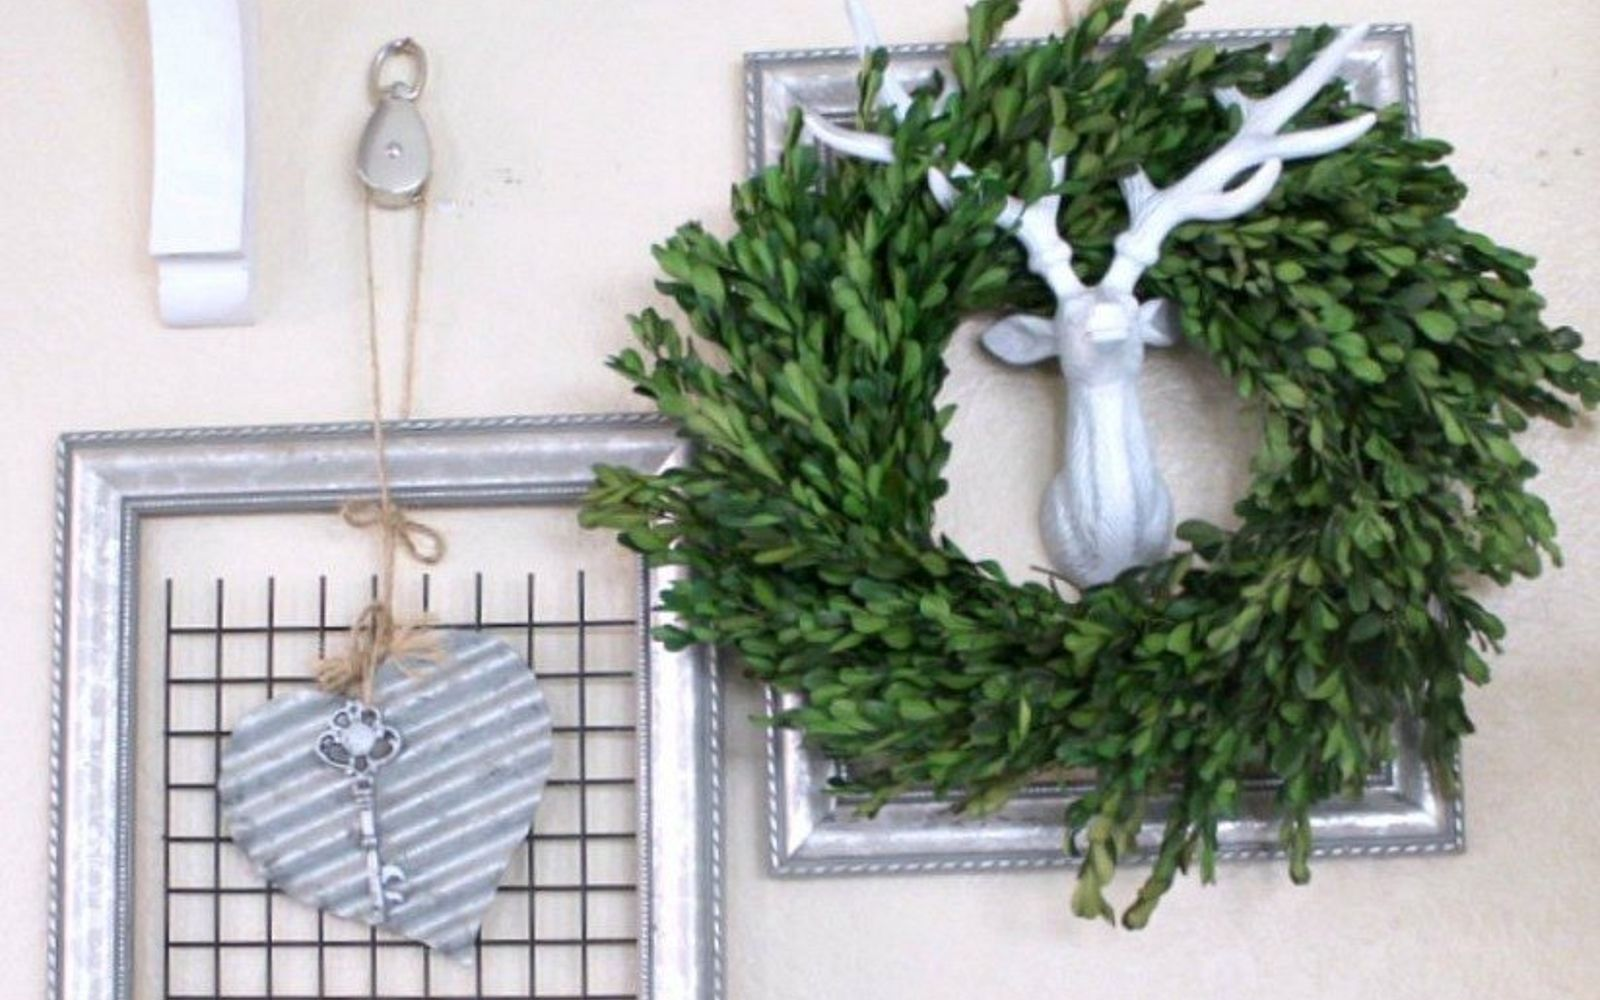 s how 13 dumpster divers decorate for valentine s day, repurposing upcycling, seasonal holiday decor, valentines day ideas, Artsy Heart Hanging from Thrift Store Frames